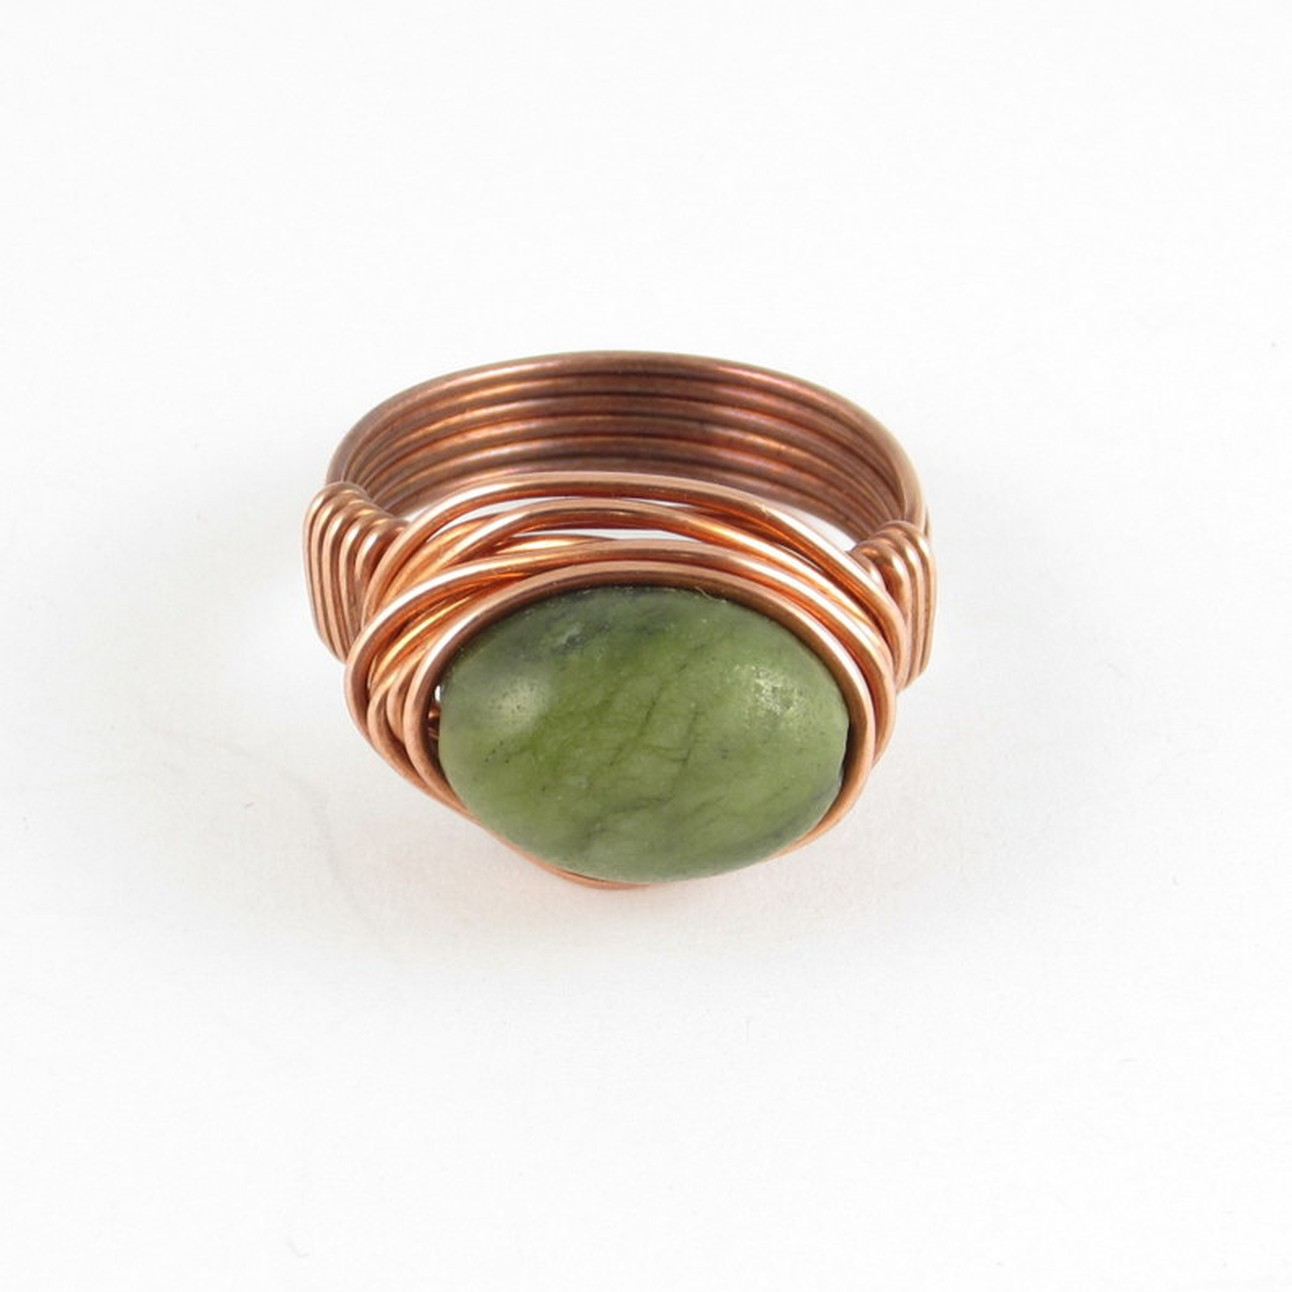 Handmade Sterling Silver Wire Wrap Tiger Eye Agate Cabochon Ring